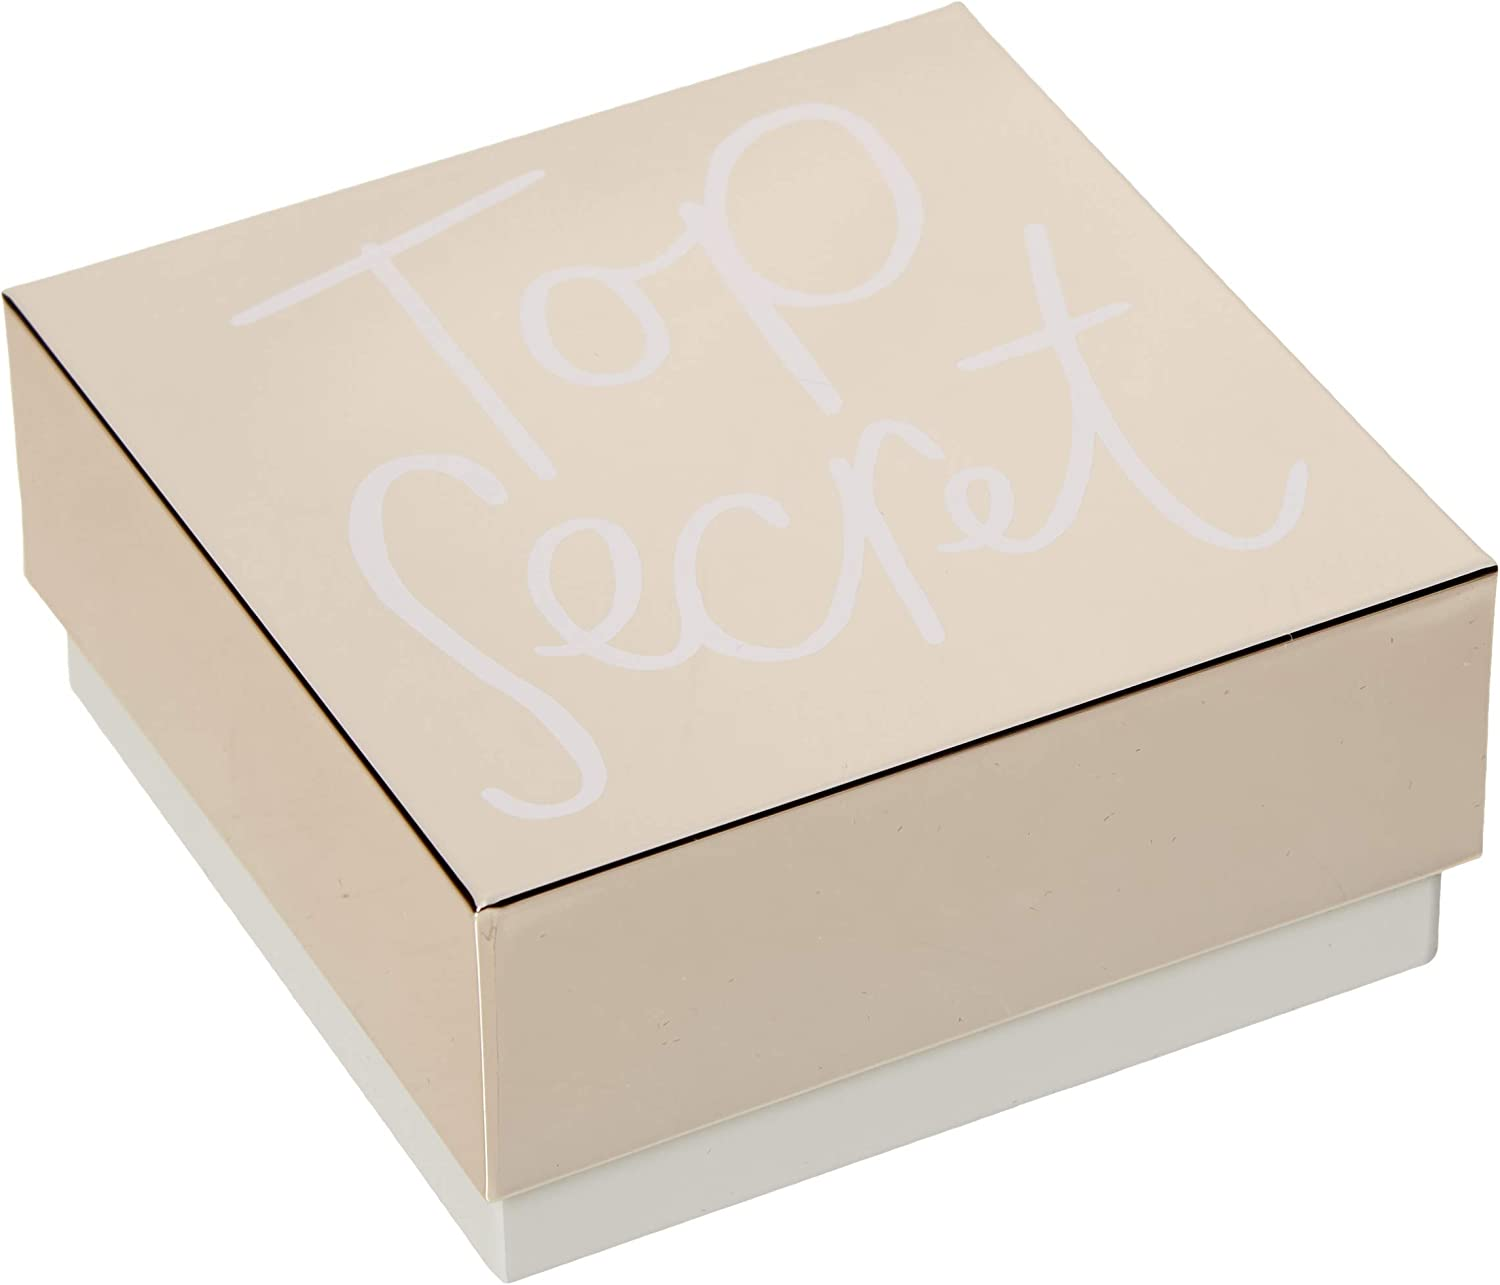 Kate Spade New York trend rank Seattle Mall KS Covered Glistens All Box That